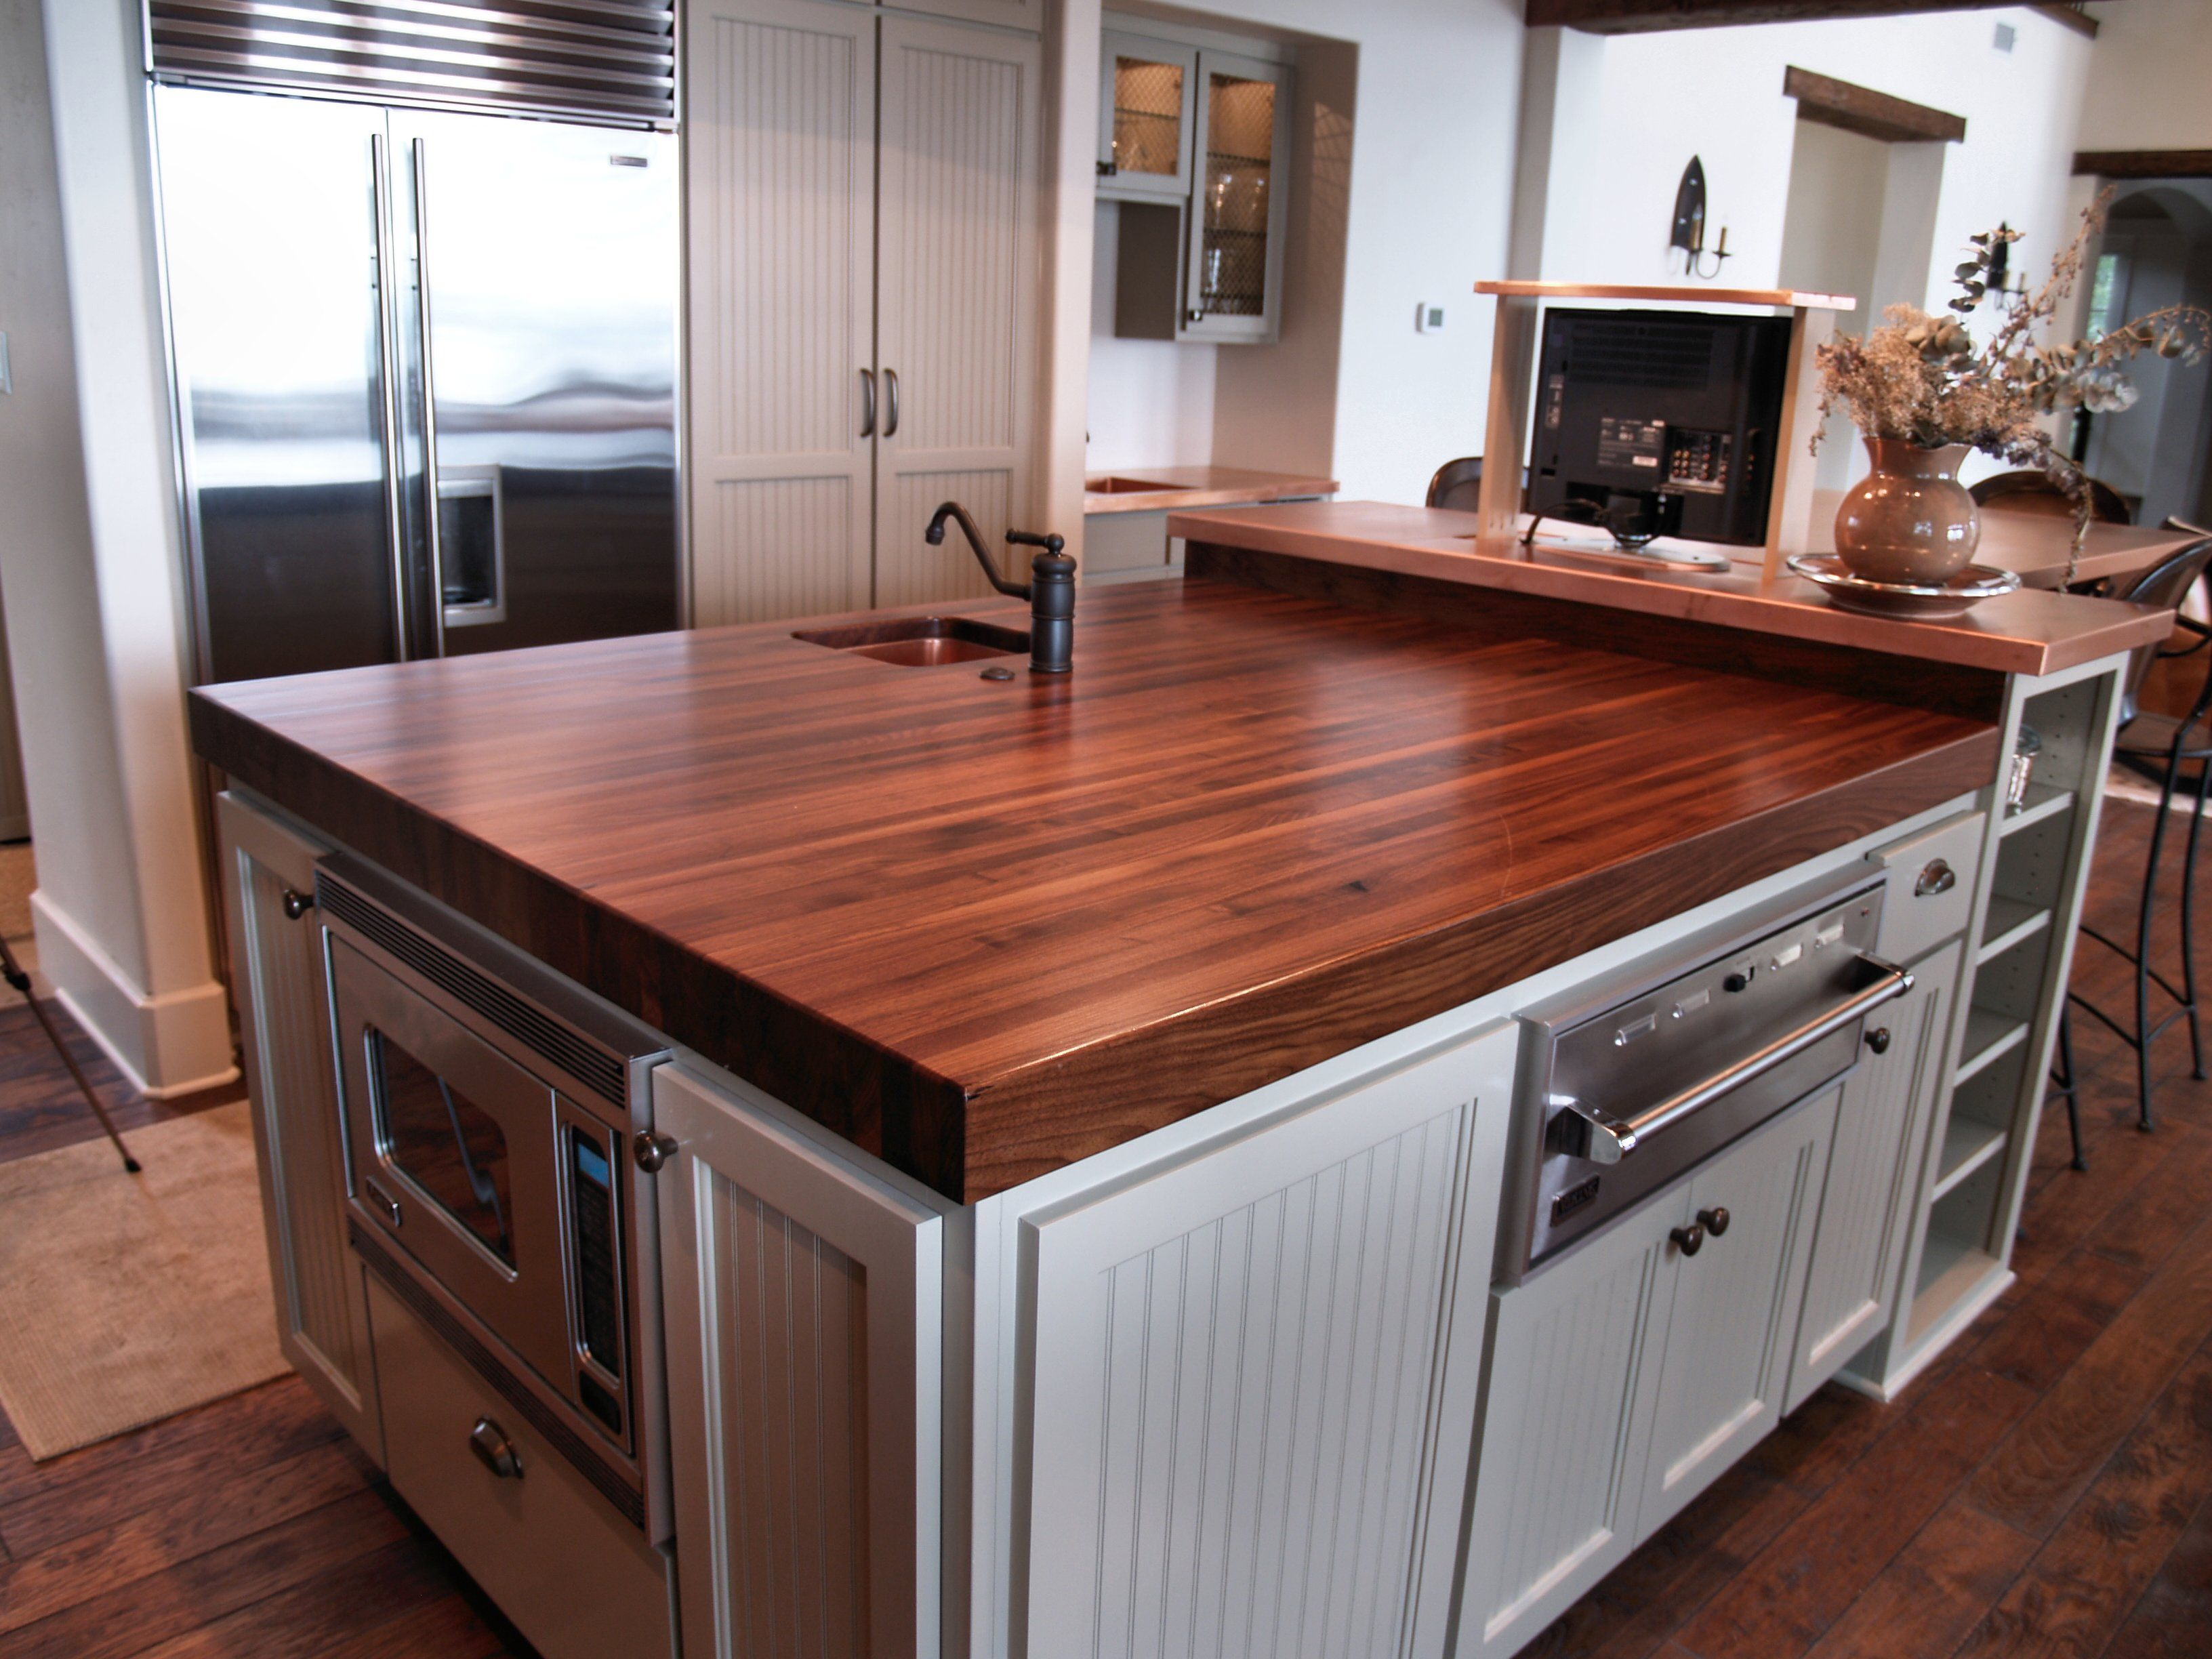 Best Wood For Butcher Block Counters: Walnut Edge Grain Wood Island Top